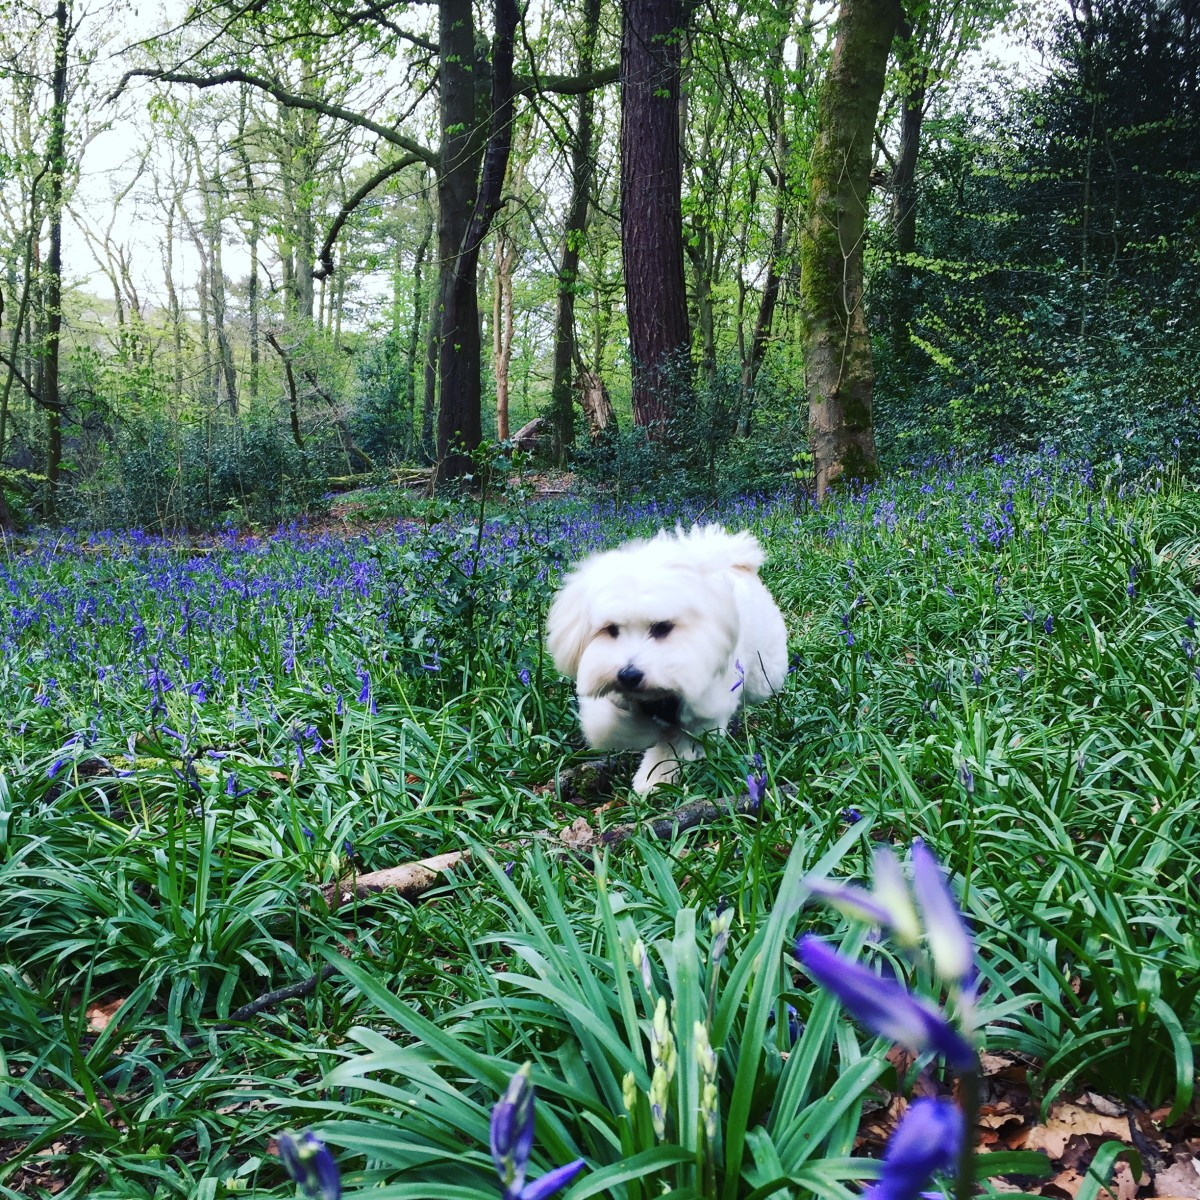 Amongst the bluebells